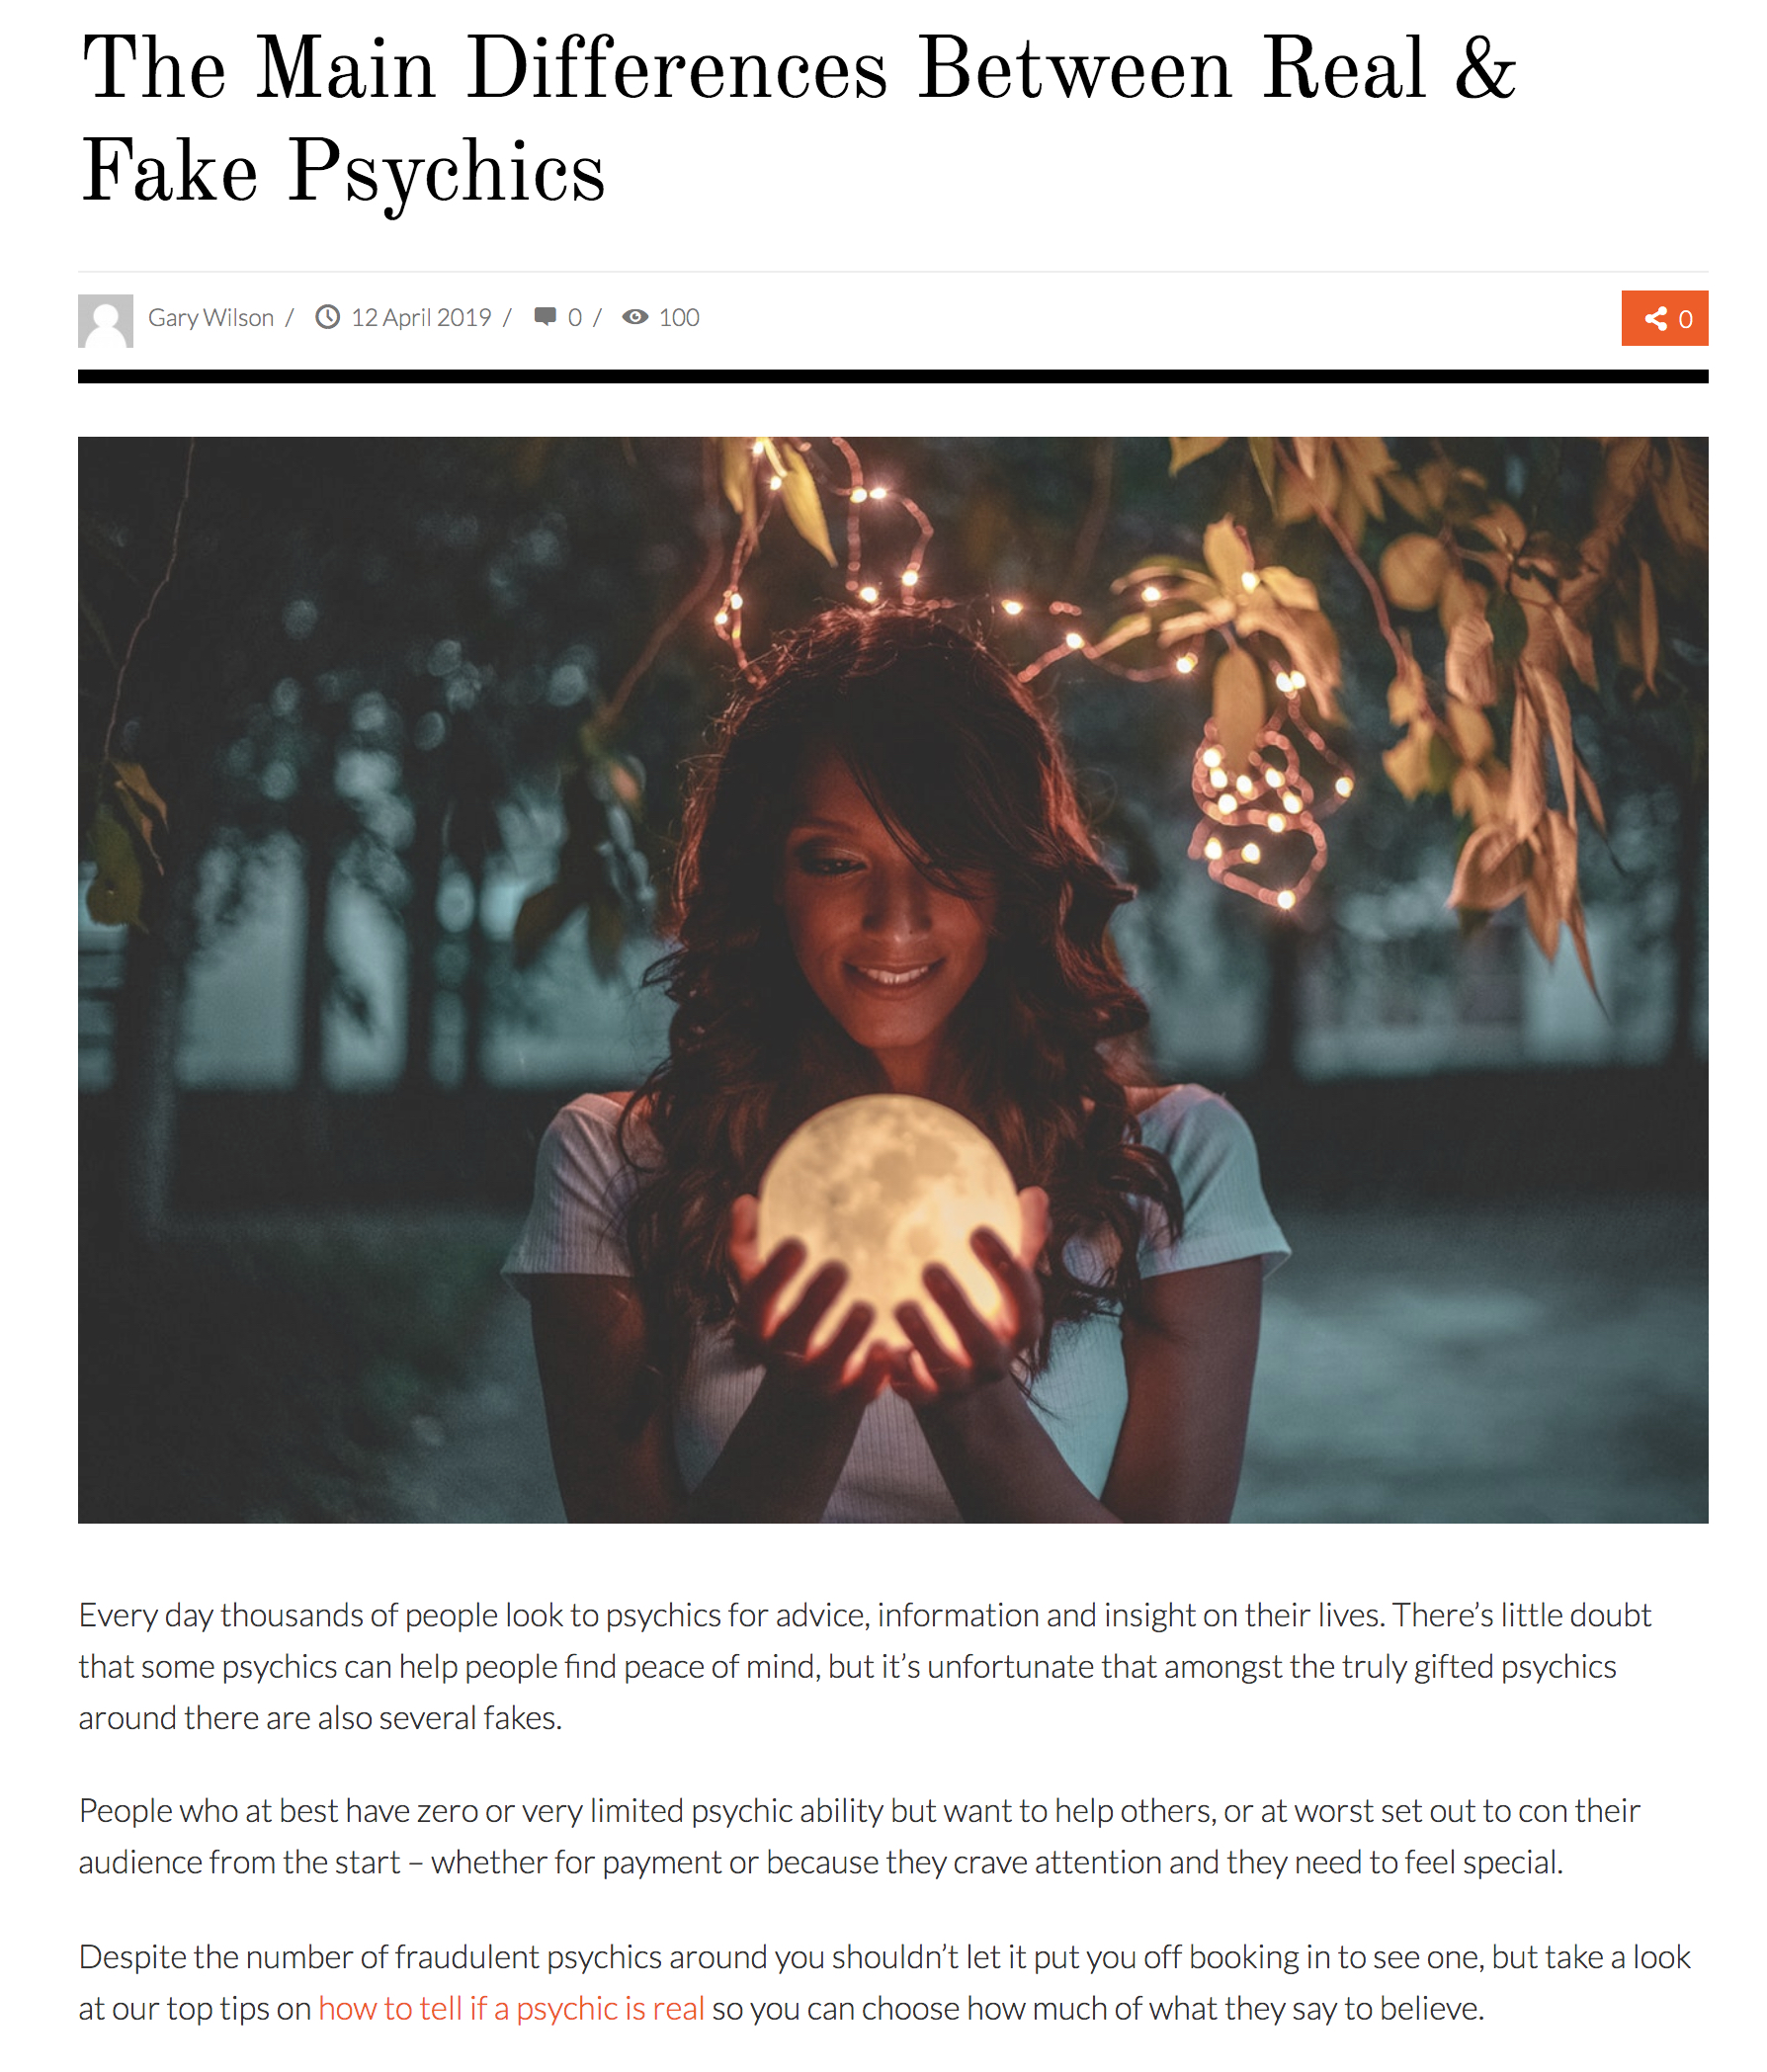 Telling 'Real' from 'Fake' Psychics | Center for Inquiry